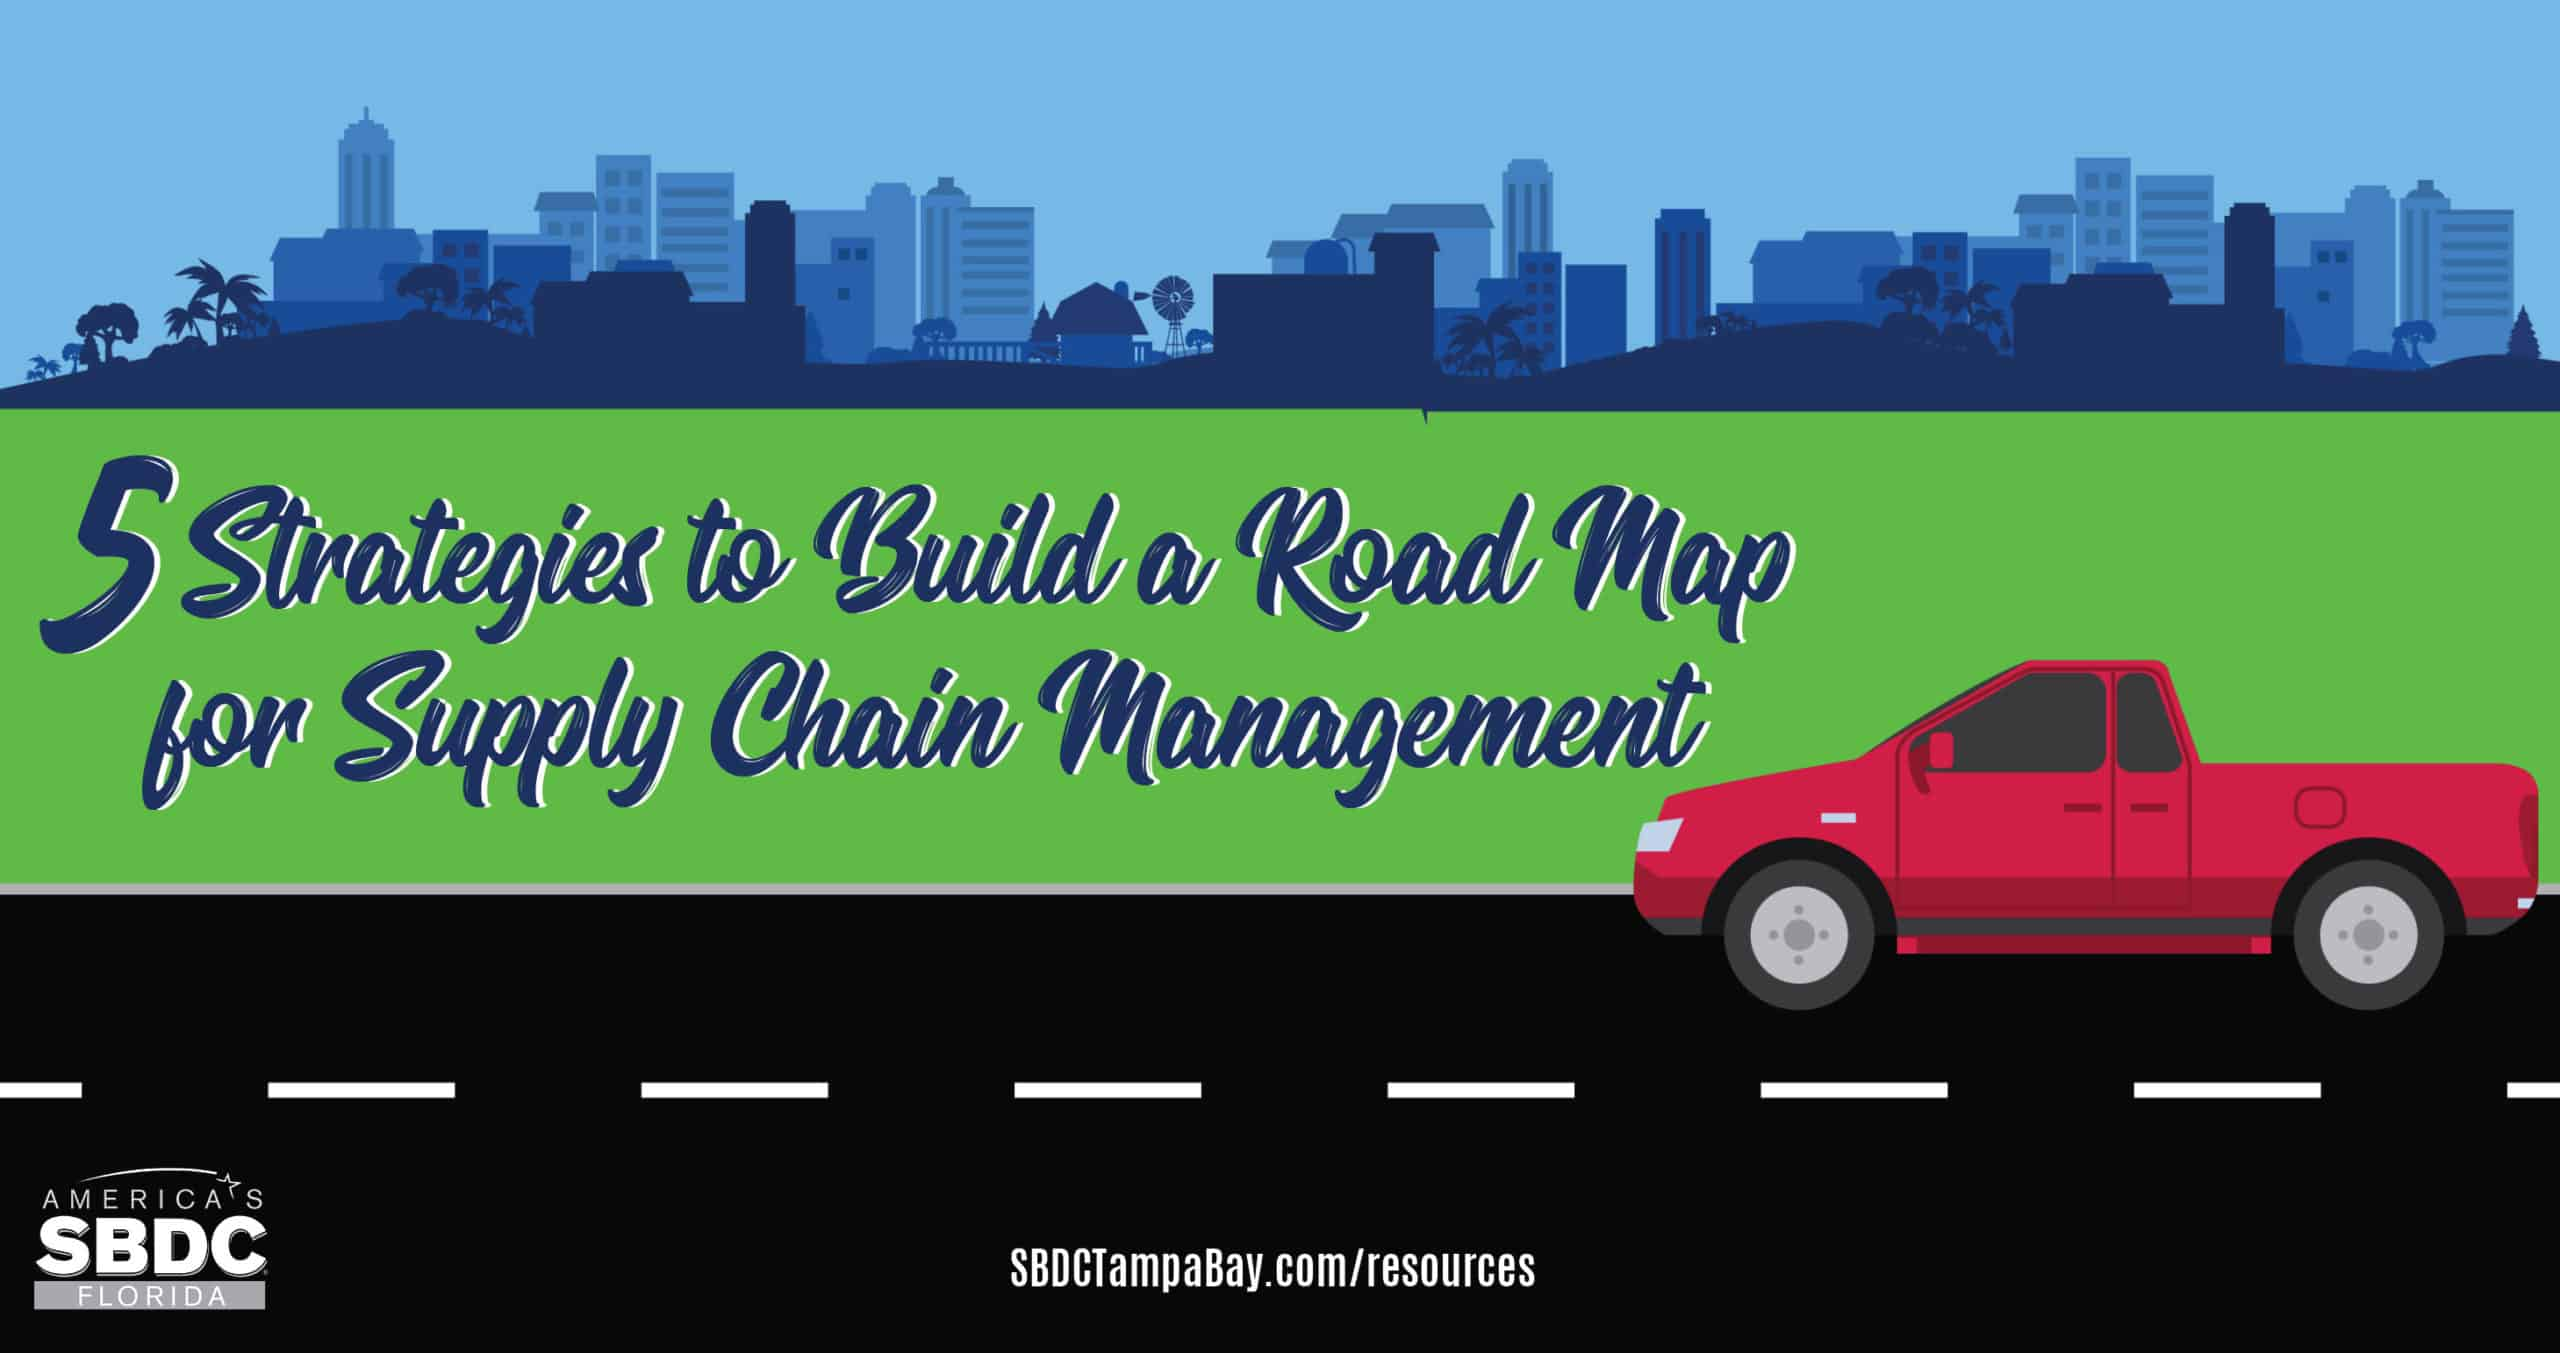 5 Strategies to Build a Road Map for Supply Chain Management